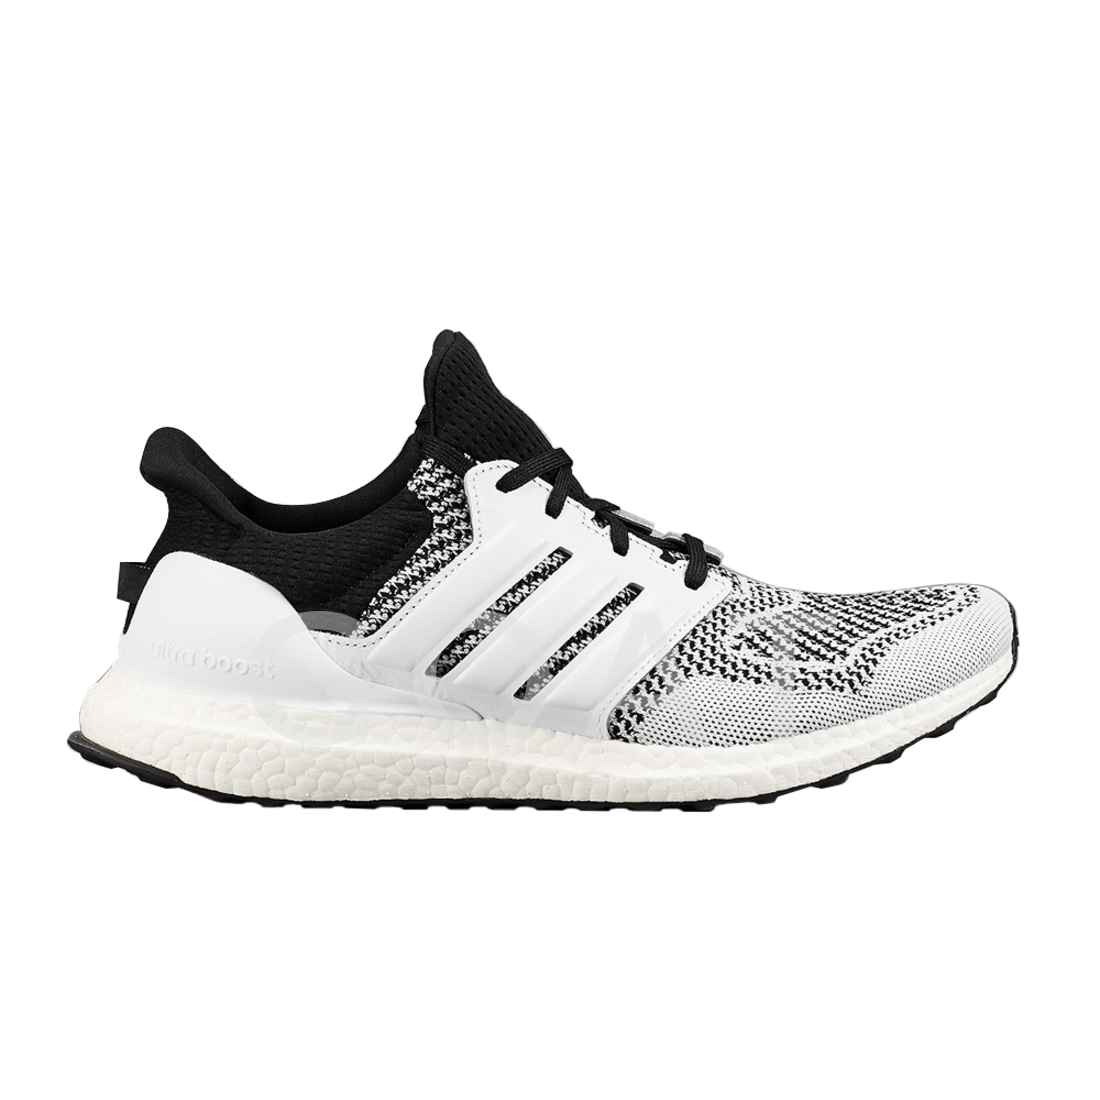 6fb0949ded1a9 SNS x Ultra Boost  Tee Time  - Adidas - AF5756 - black white